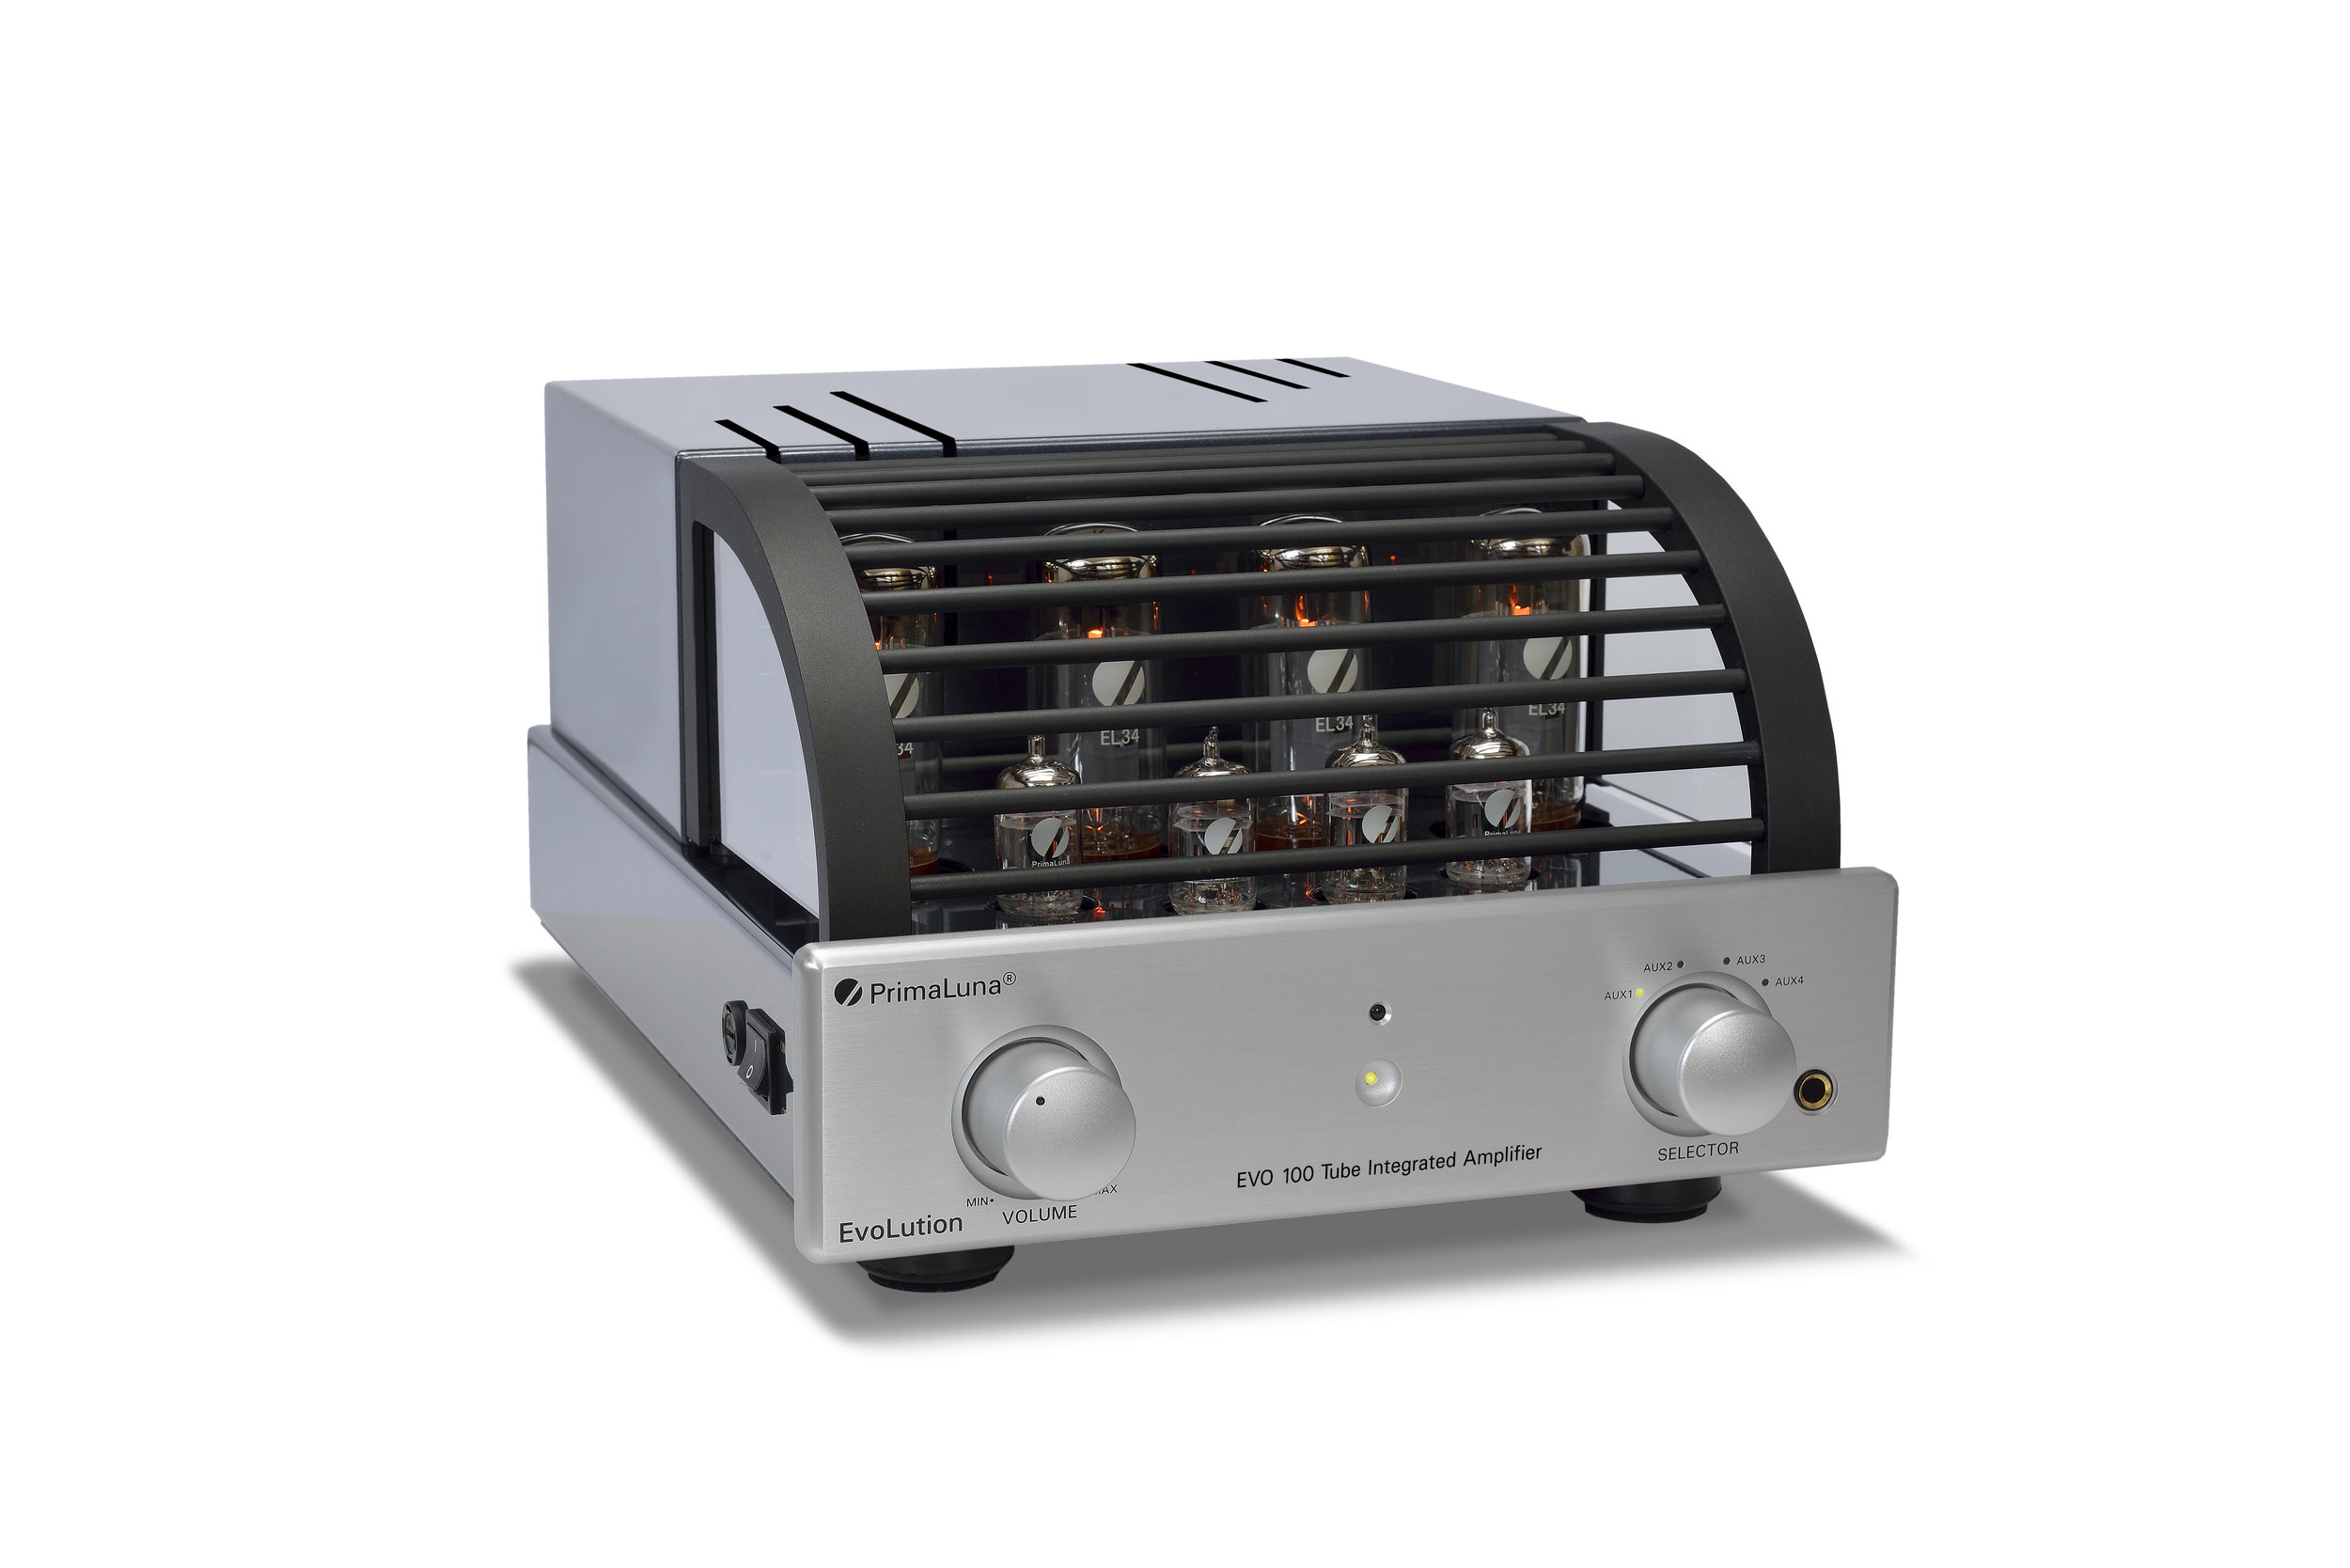 172b - PrimaLuna EVO 100 Tube Integrated Amplifier - silver - slanted - white background.jpg